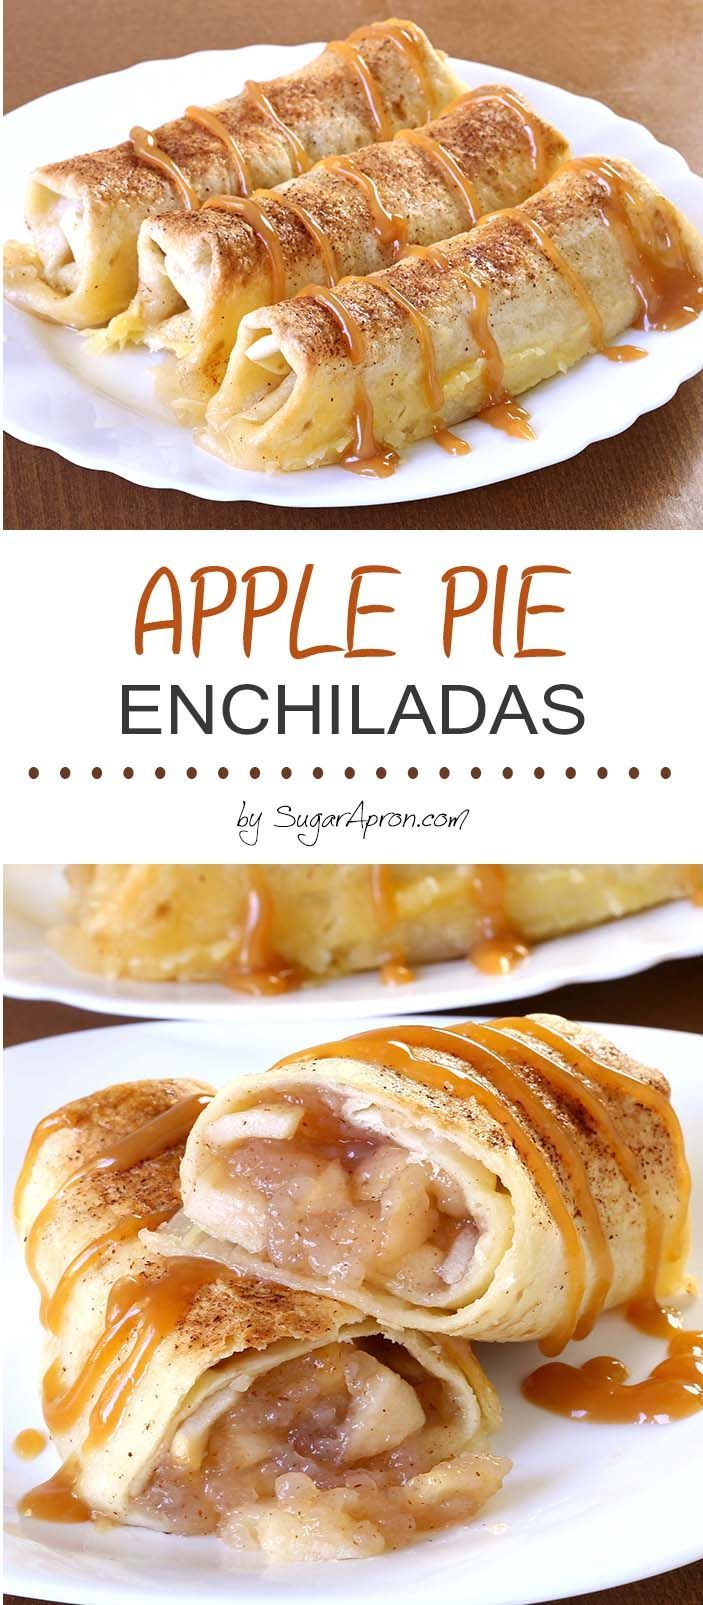 Apple Pie Enchiladas #desserts Baked Apple Pie Enc…